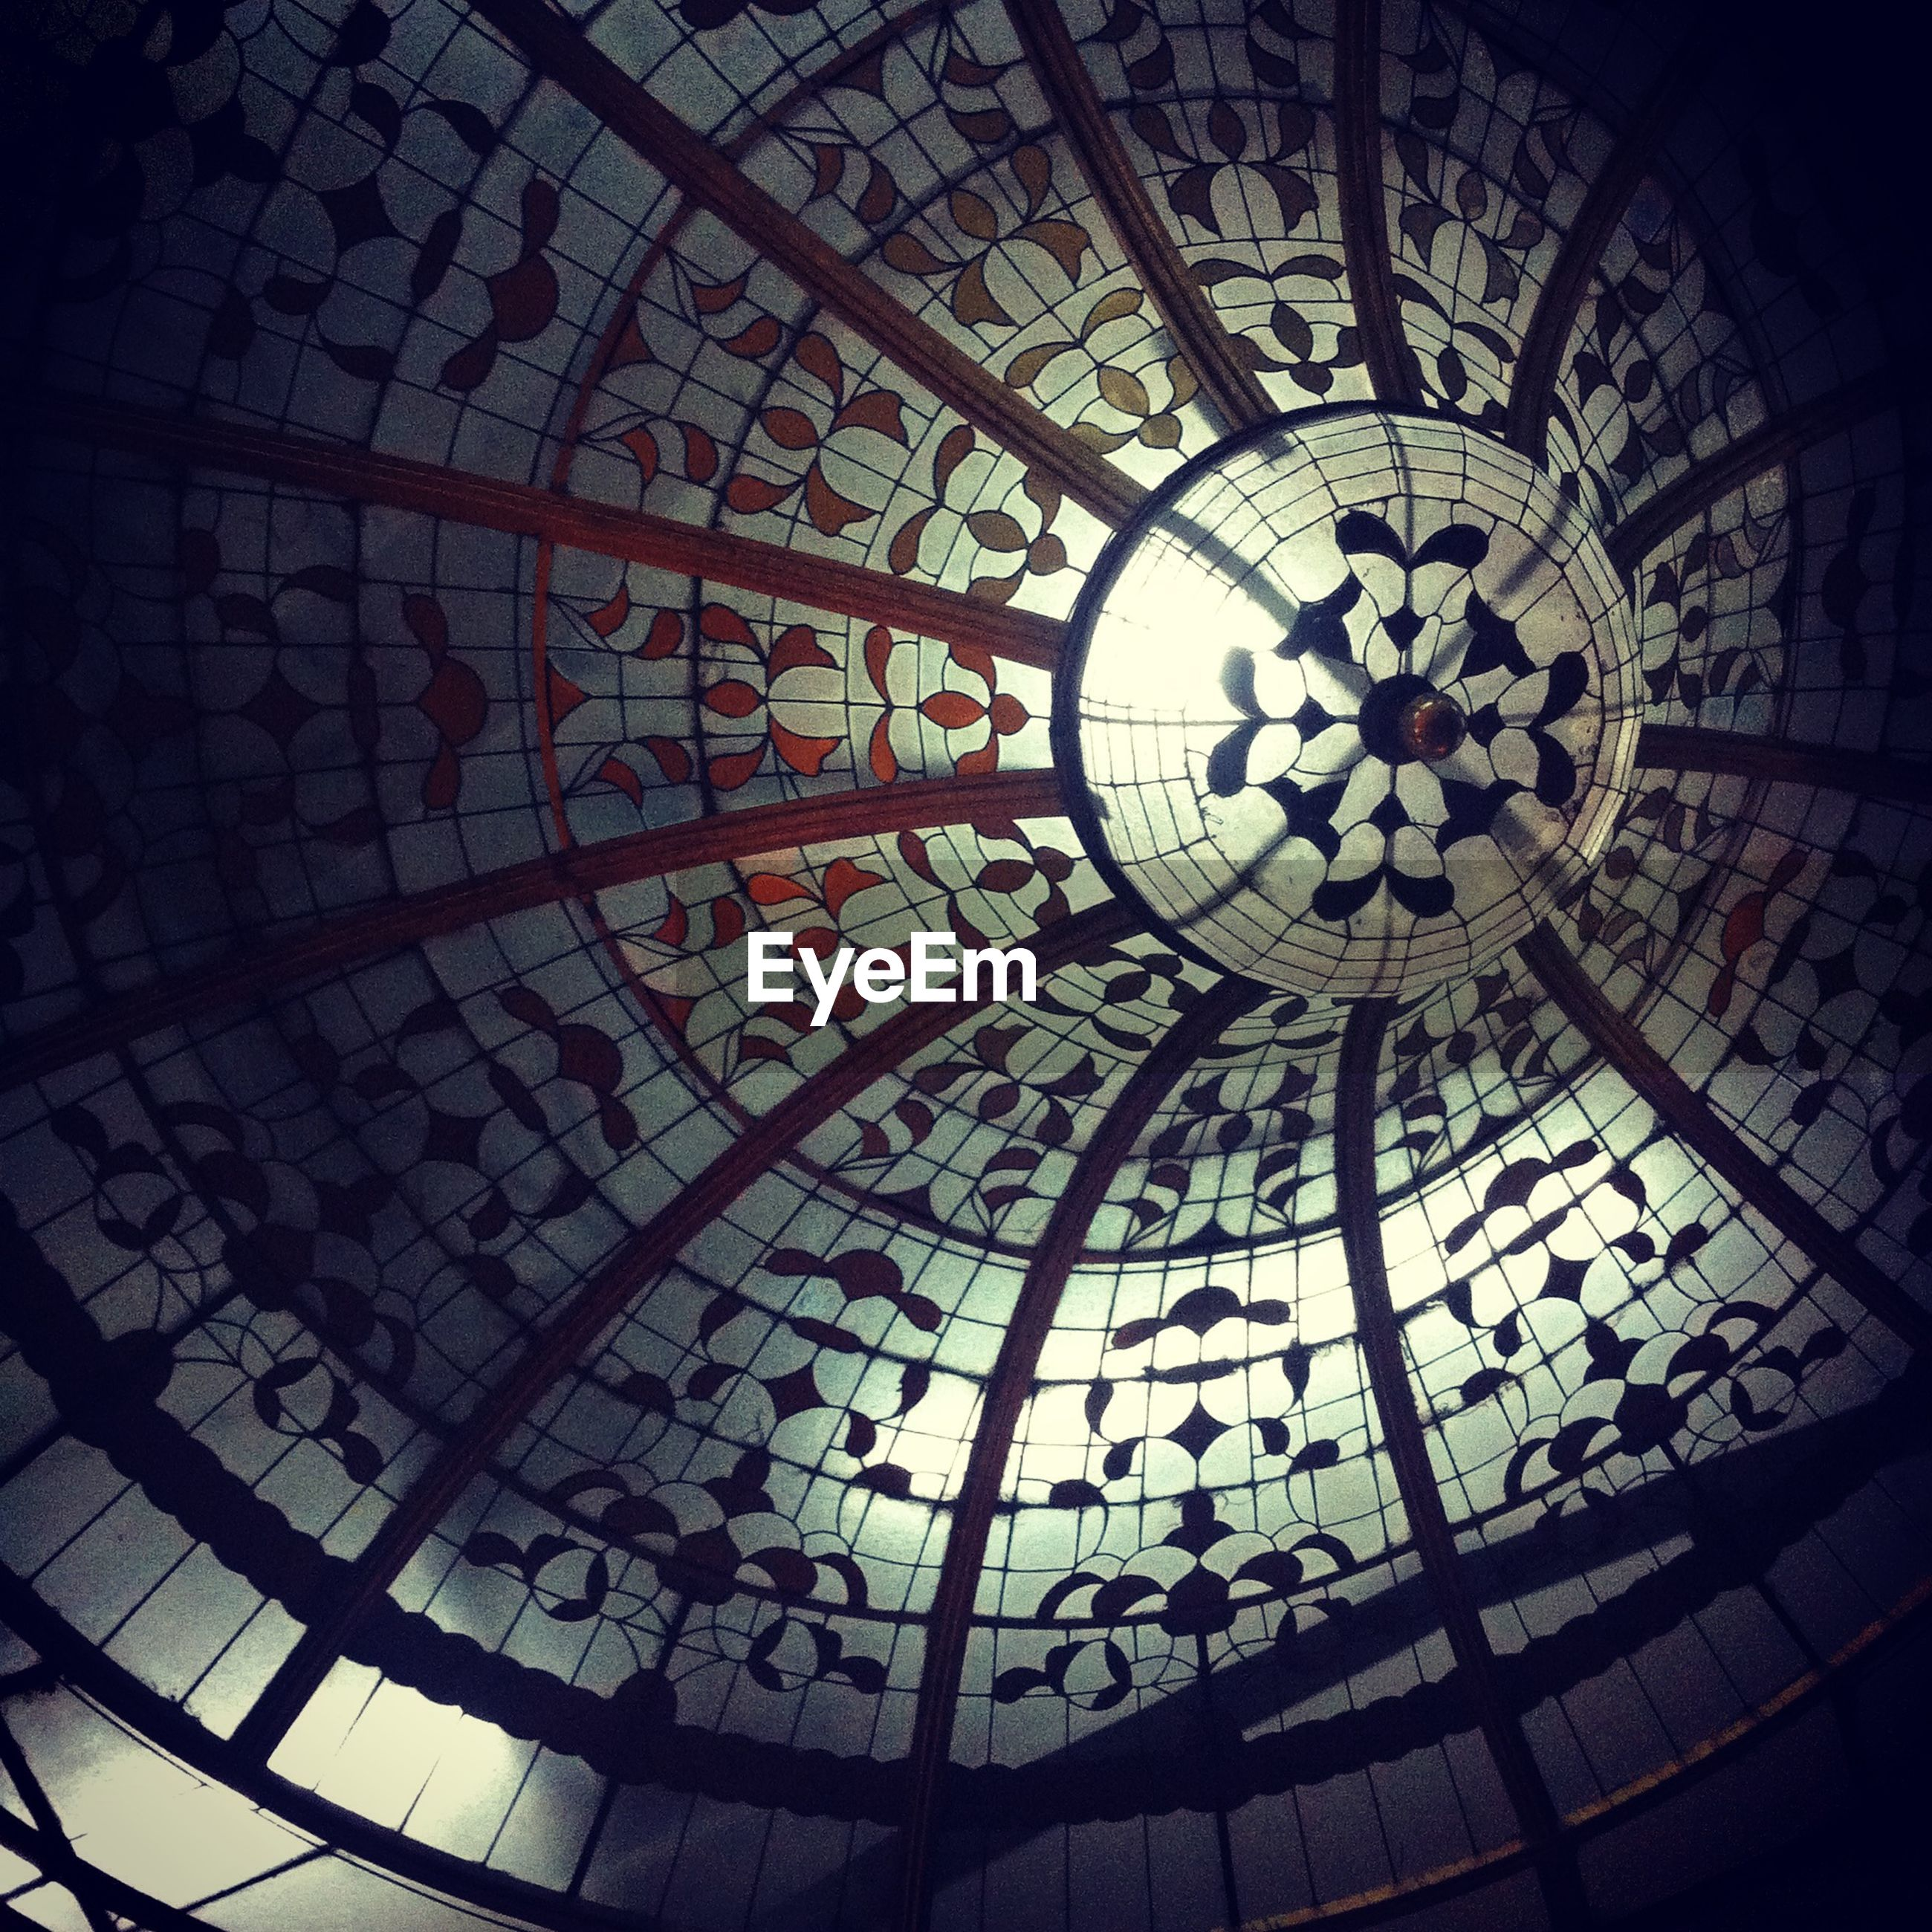 low angle view, indoors, ceiling, architecture, built structure, pattern, circle, design, geometric shape, architectural feature, directly below, religion, art and craft, ornate, no people, clock, dome, church, place of worship, art